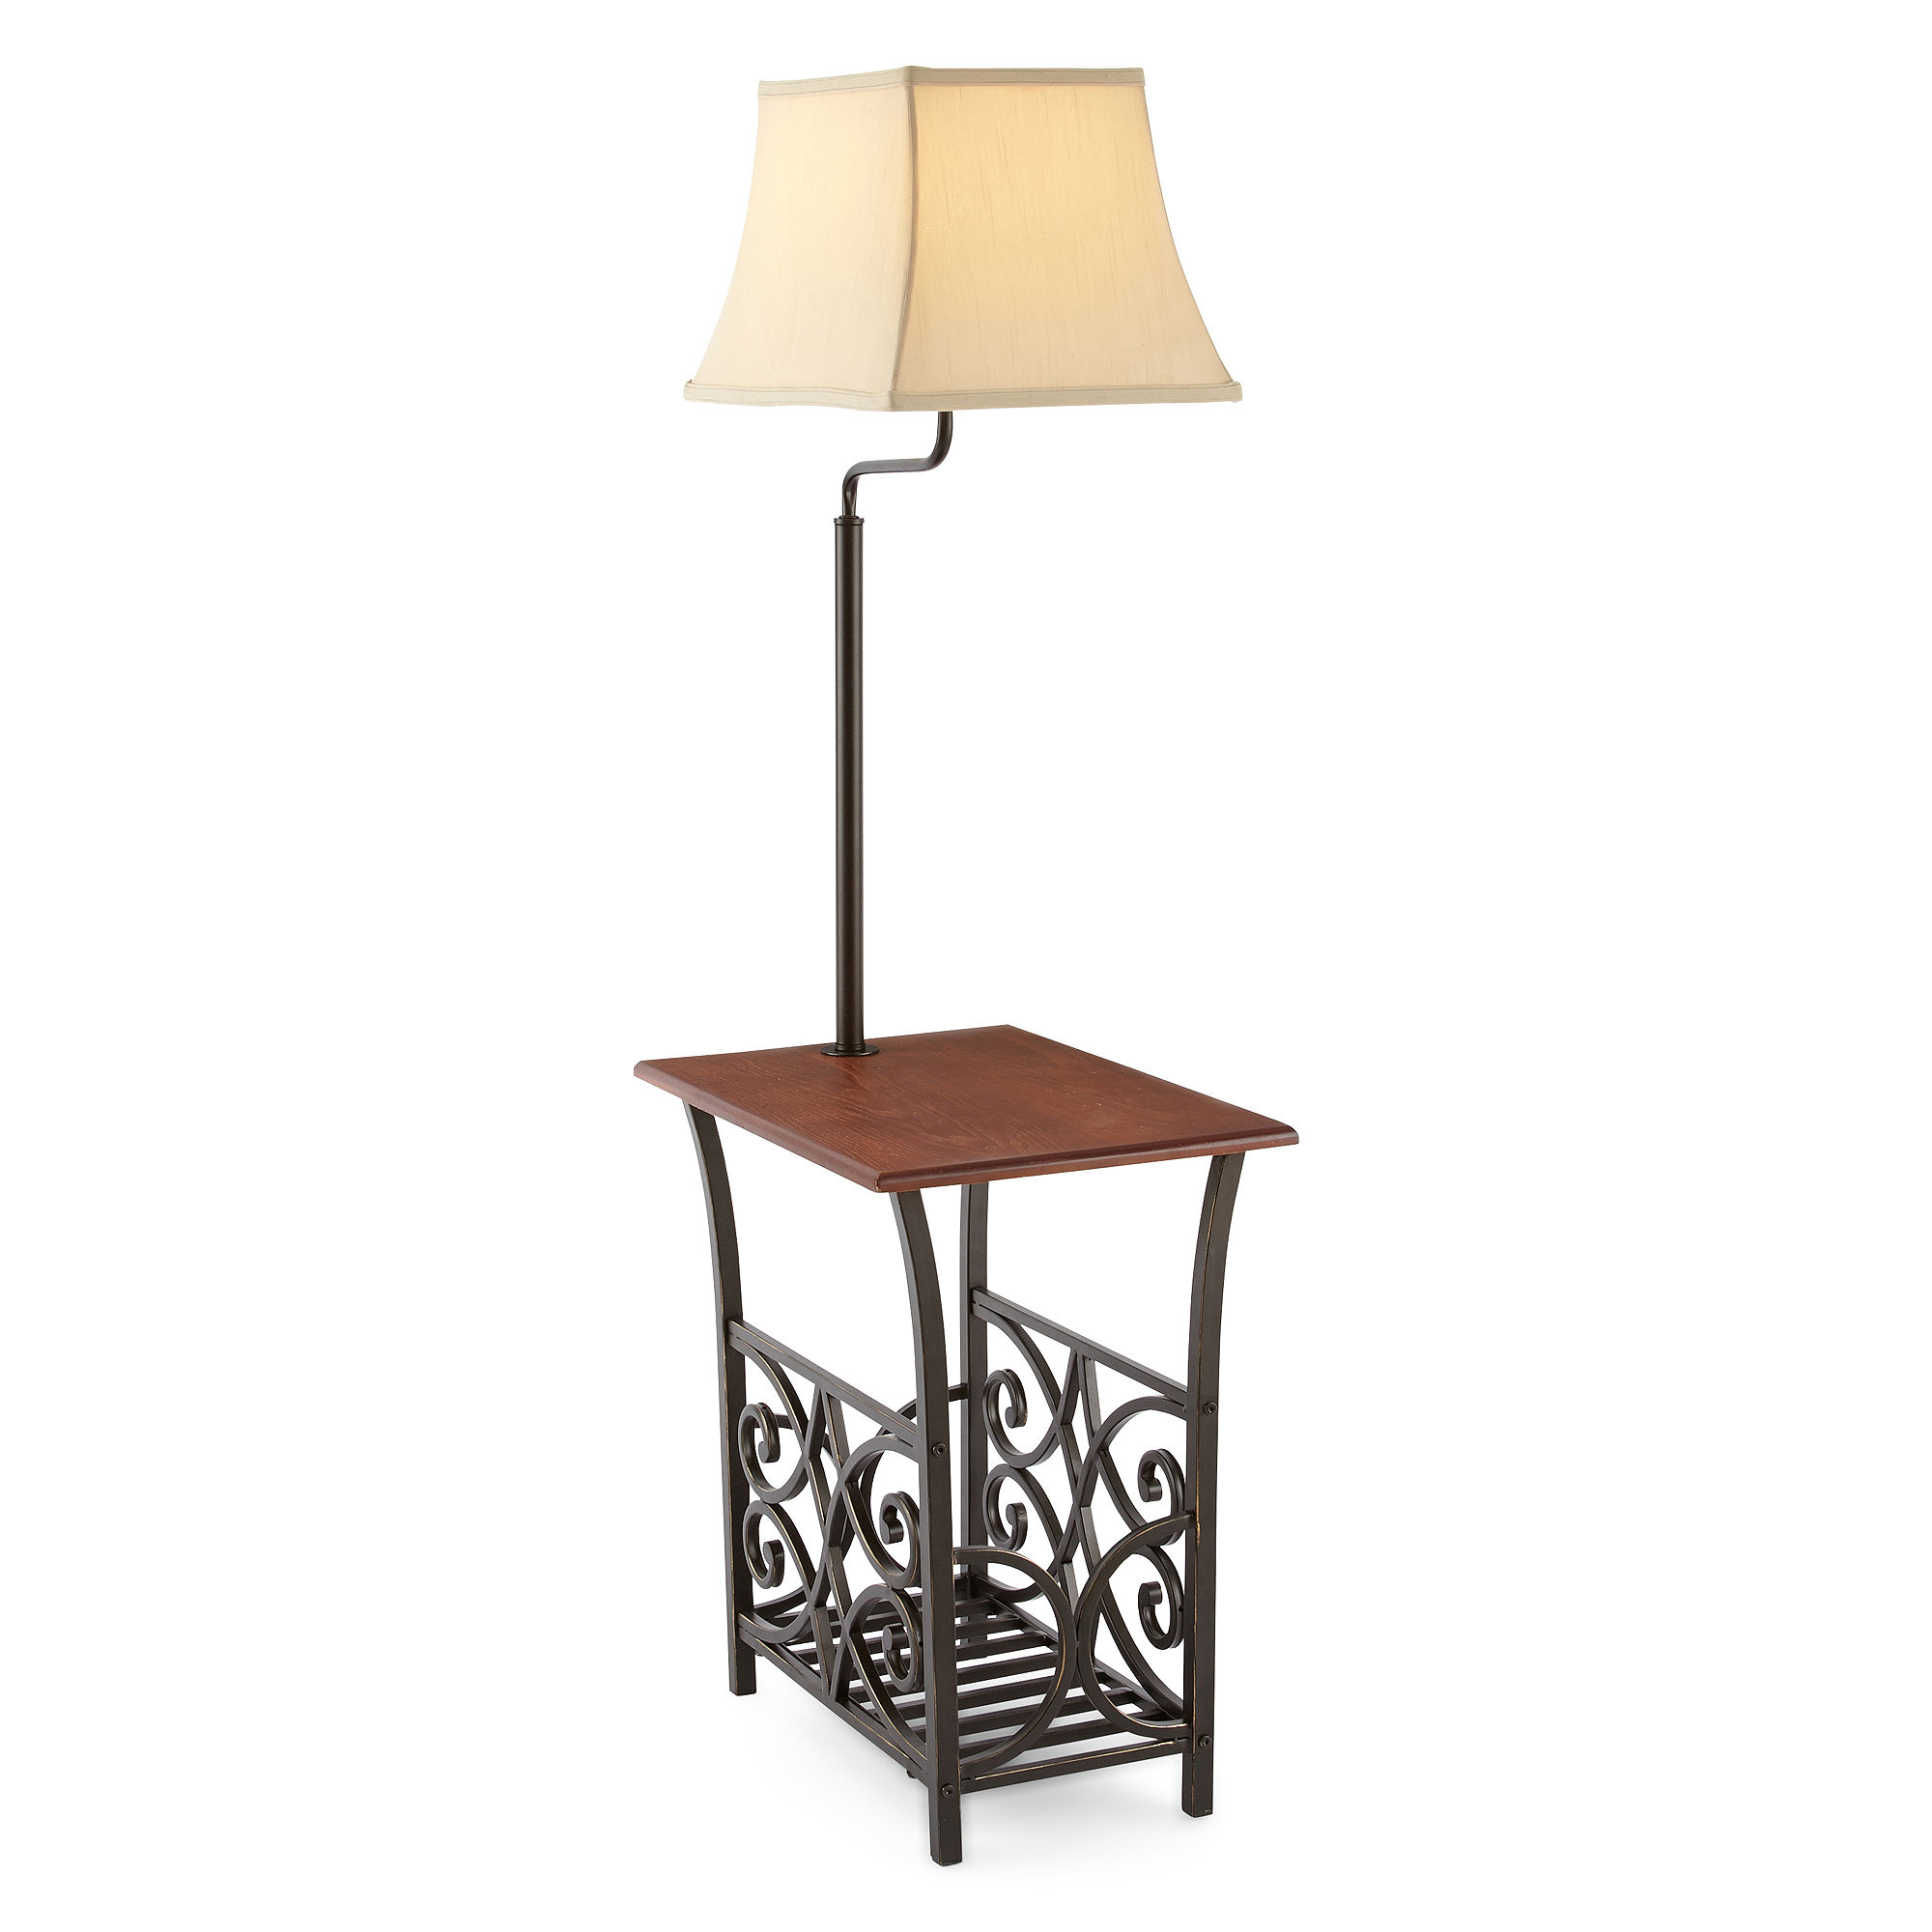 side table with lamp jcpenney home magazine rack side table with lamp. Black Bedroom Furniture Sets. Home Design Ideas